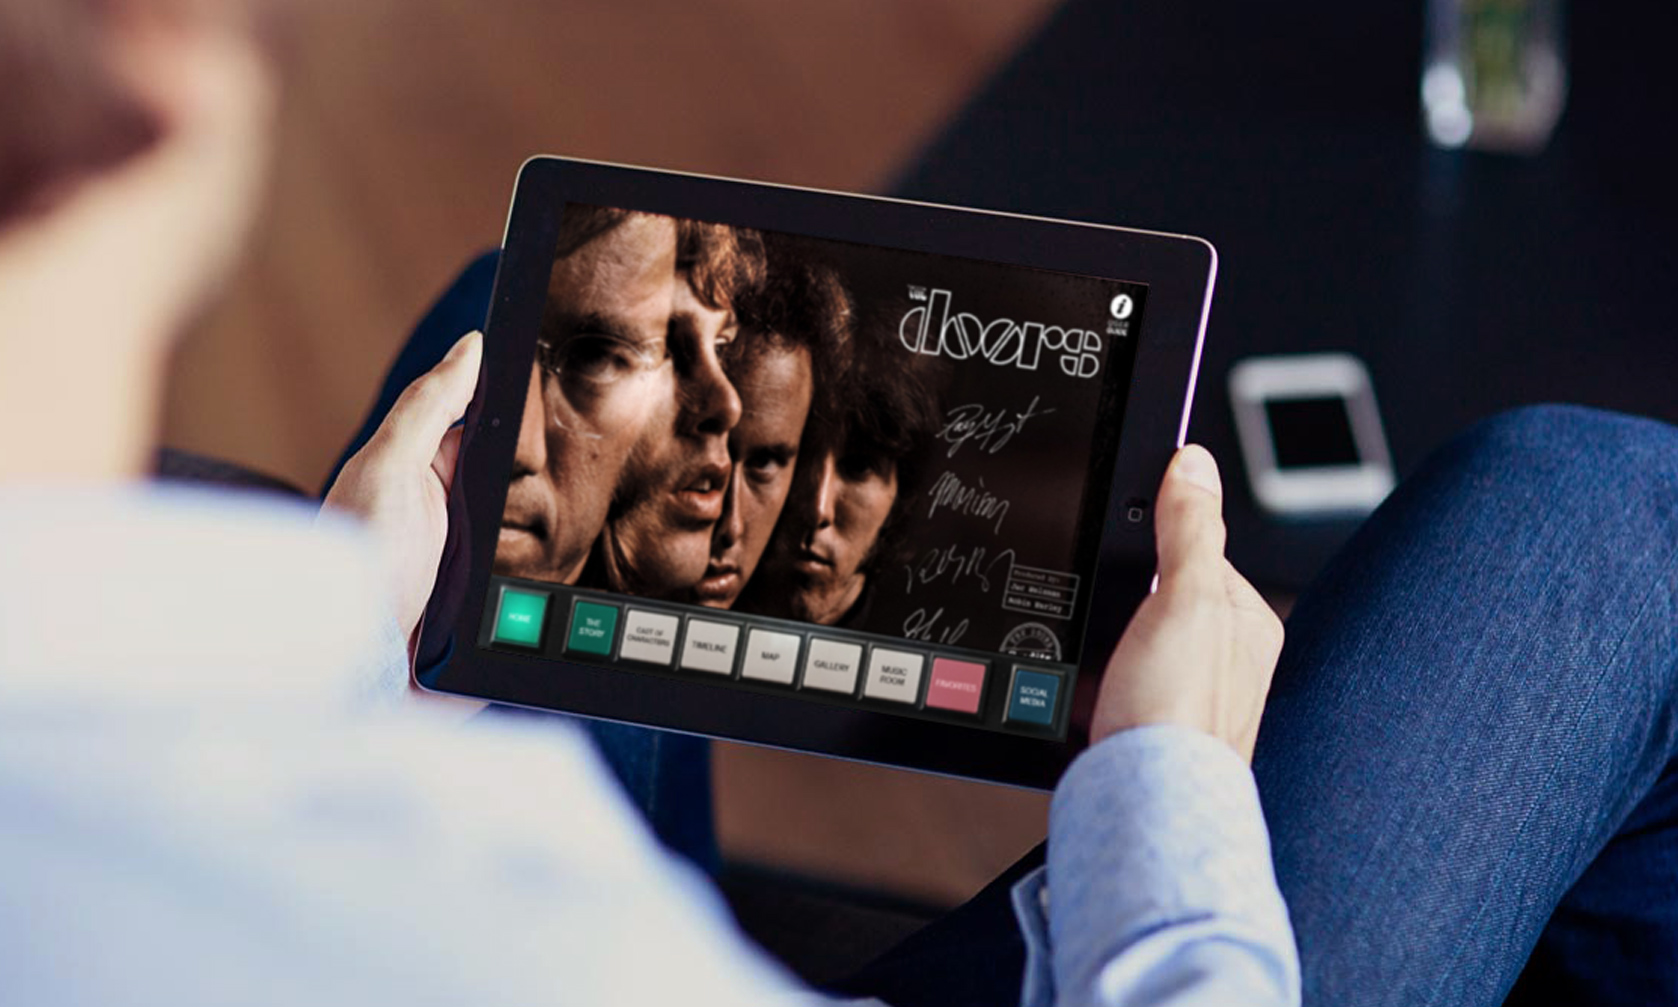 The Doors app for iPad - AAARGB!